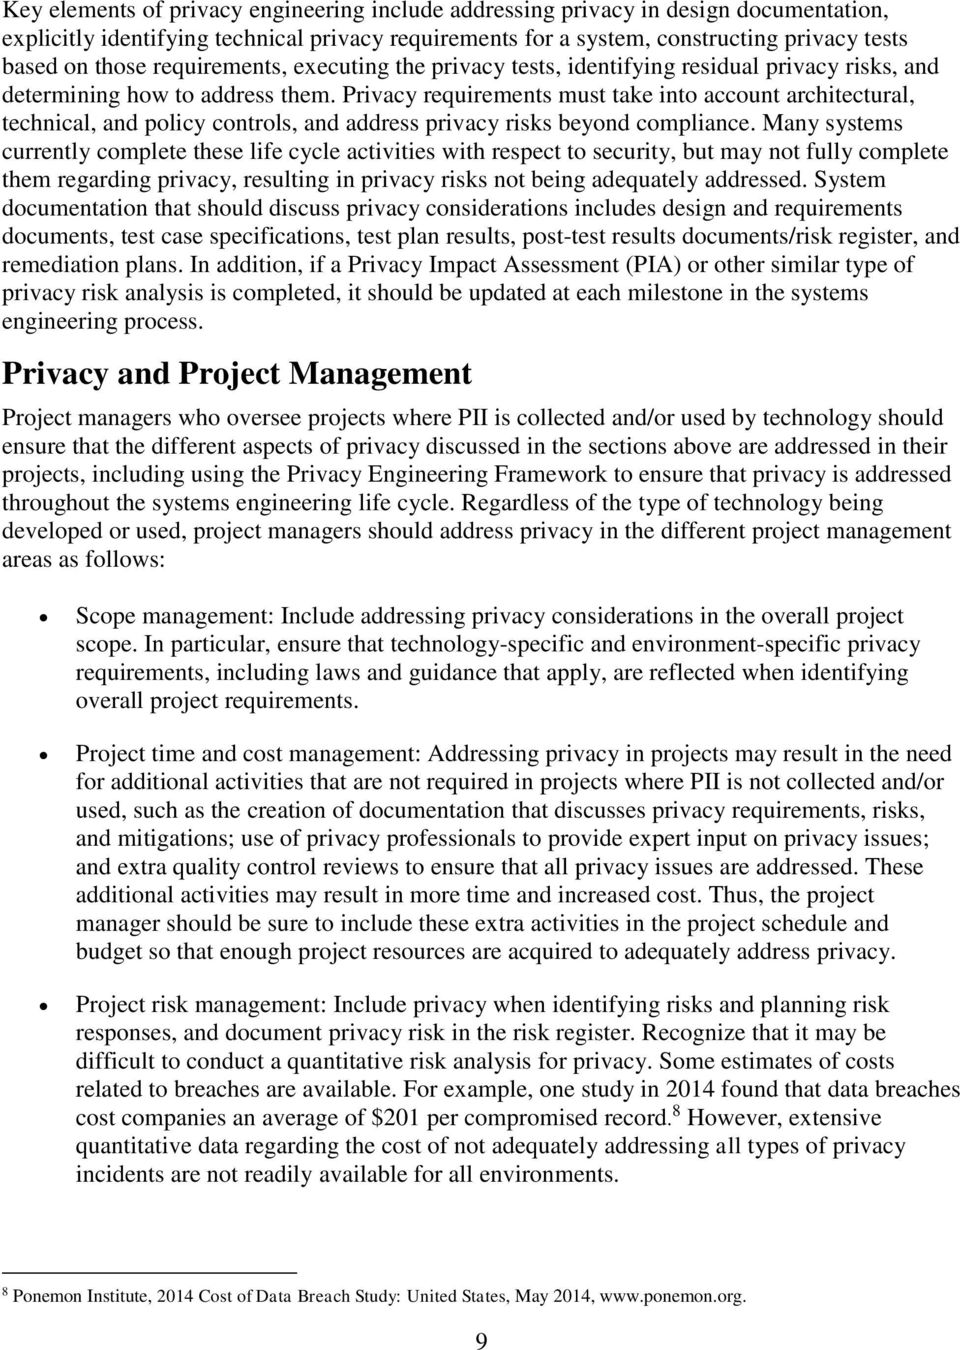 Privacy requirements must take into account architectural, technical, and policy controls, and address privacy risks beyond compliance.